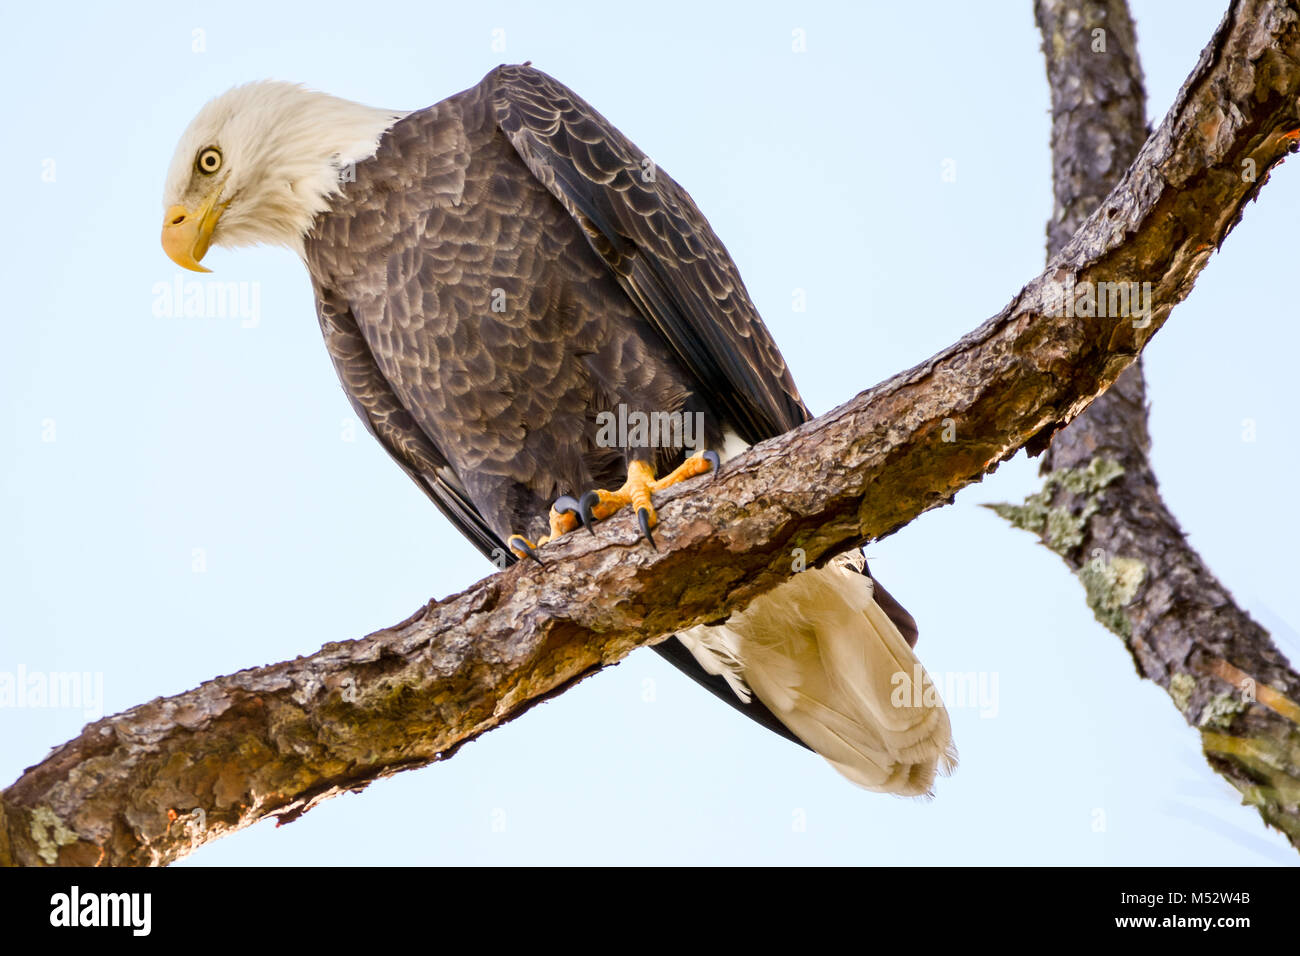 bald eagle perched on a tree branch stock photo 175240587 alamy